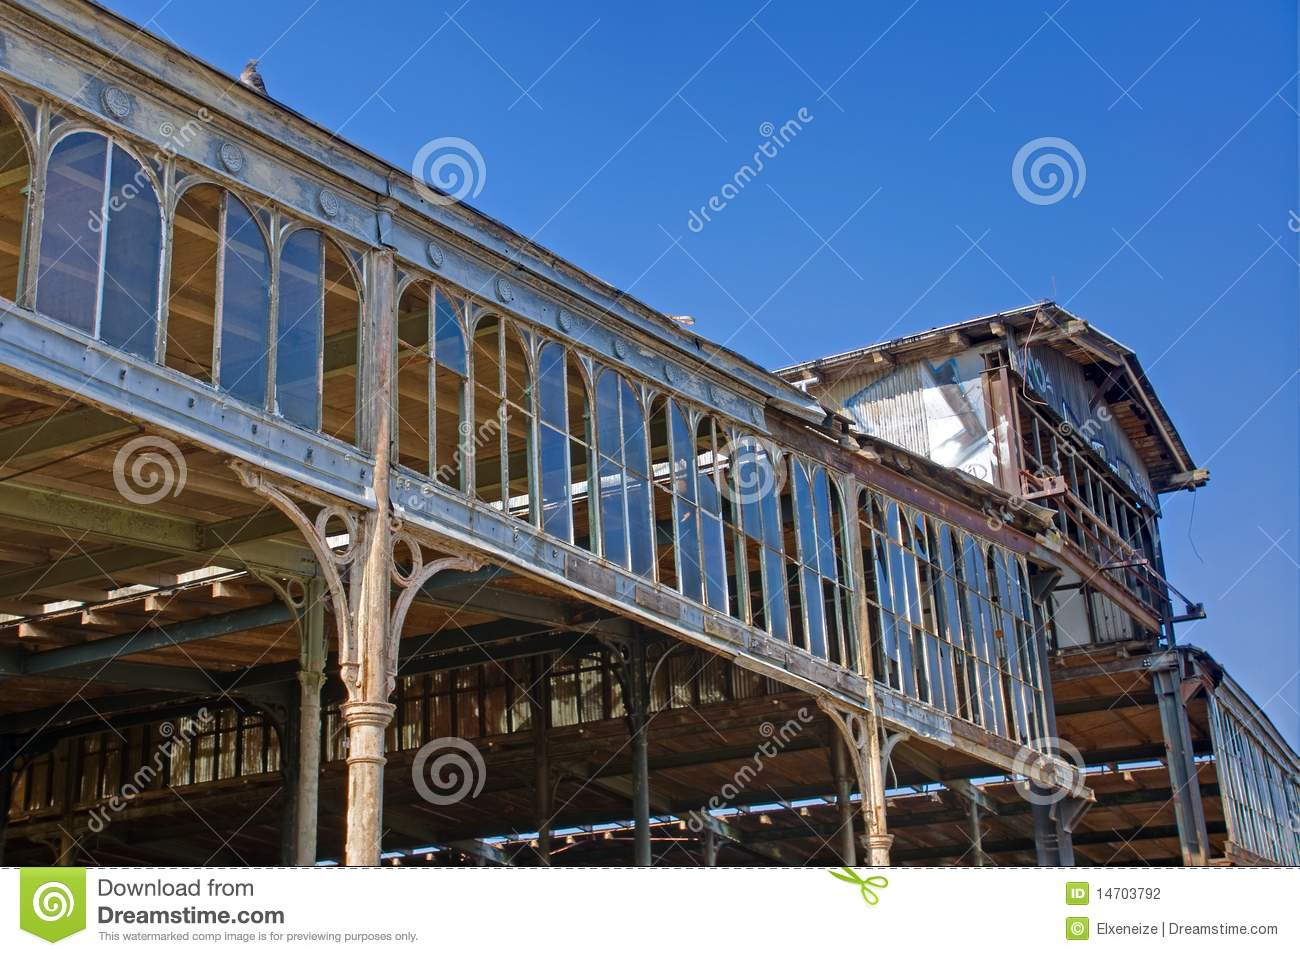 Old Factory Building Stock Photography - Image: 14703792 Old Factory Building